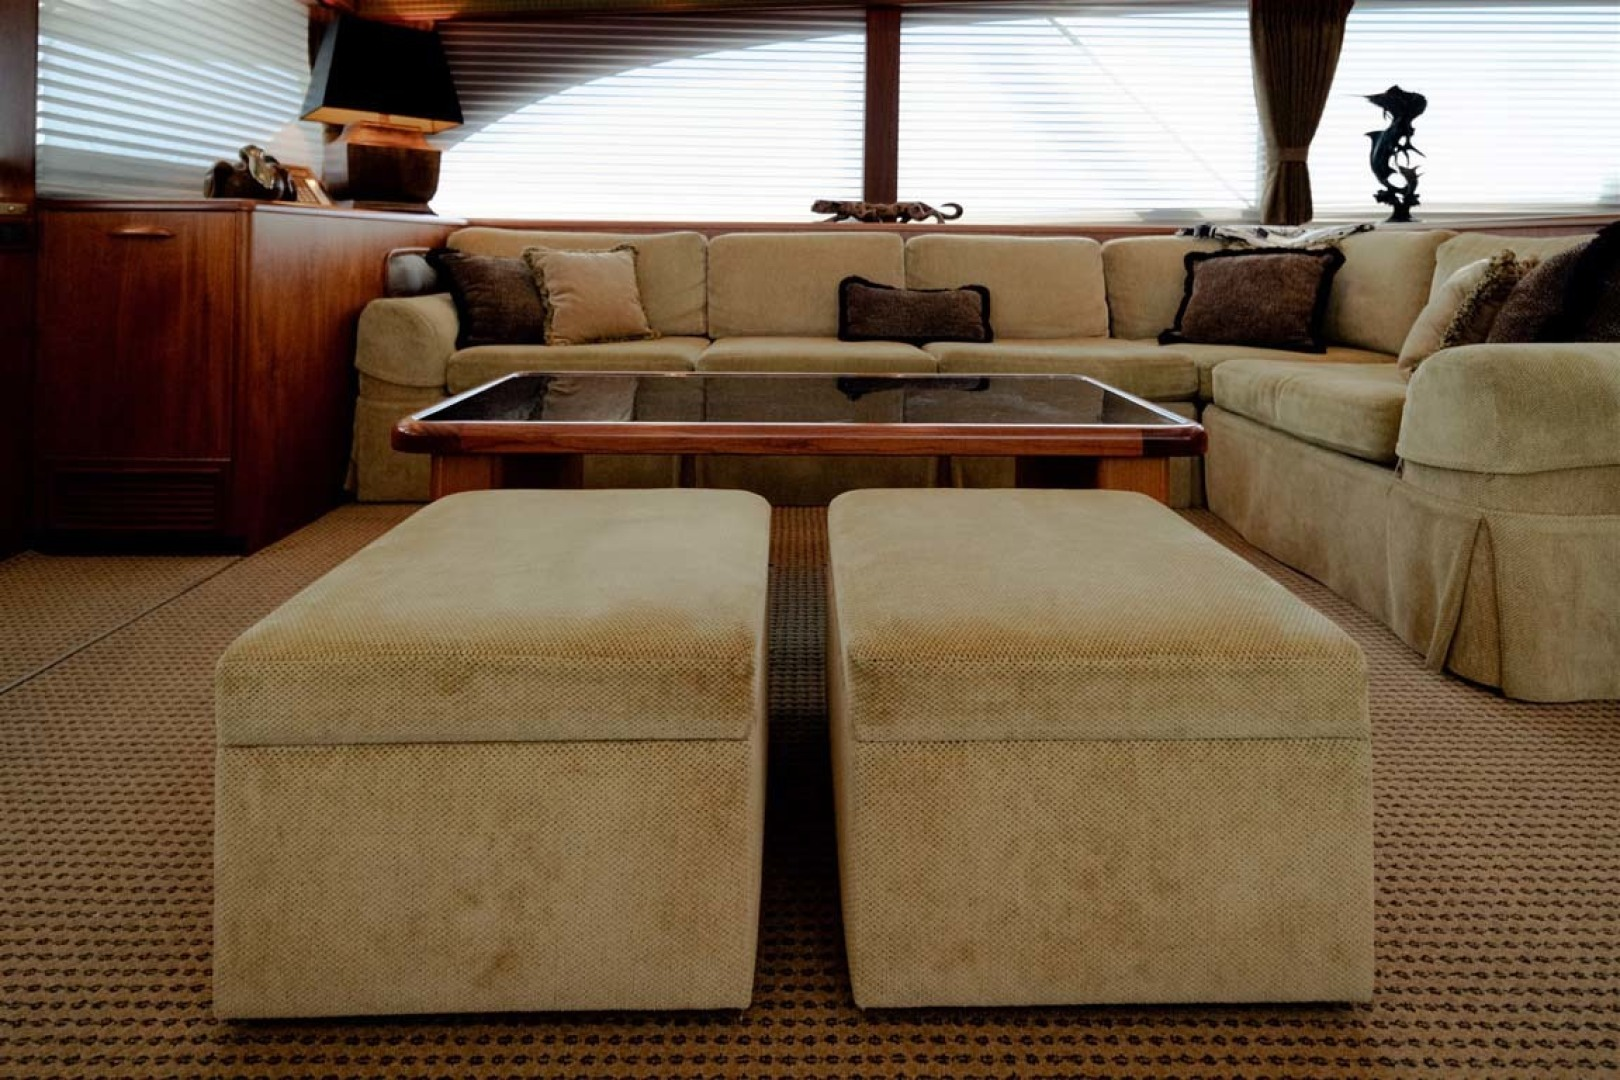 Jim Smith-Convertible 2006-Silky North Palm Beach-Florida-United States-Custom Coffee Table with (2) Stools Stored Below-1516989 | Thumbnail